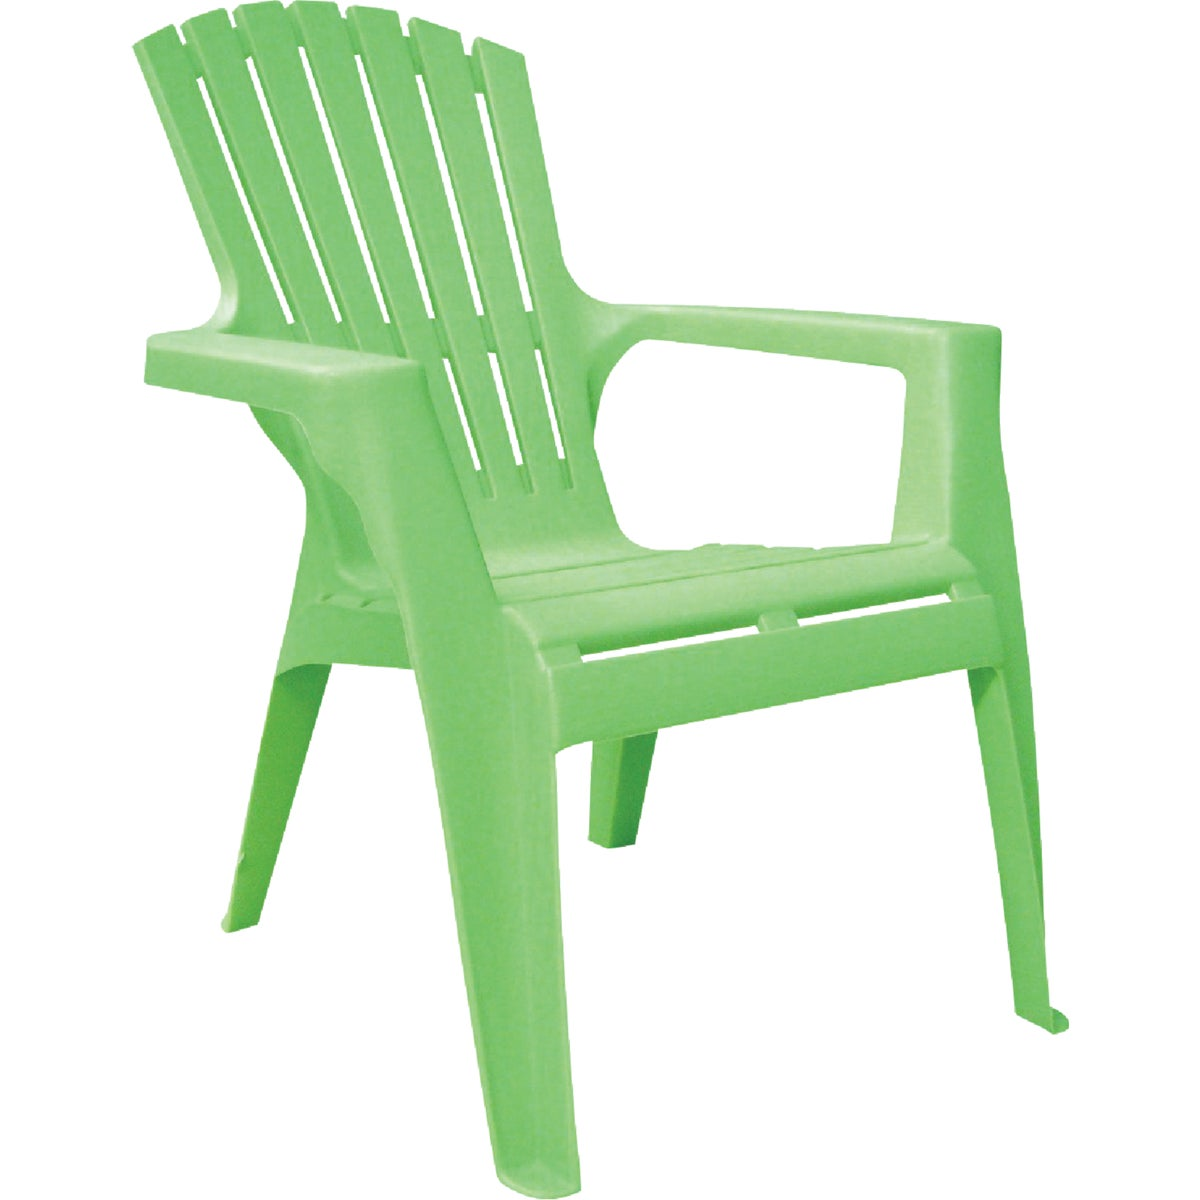 SMR GRN KIDS ADIRONDACK - 8460-08-3731 by Adams Mfg Patio Furn